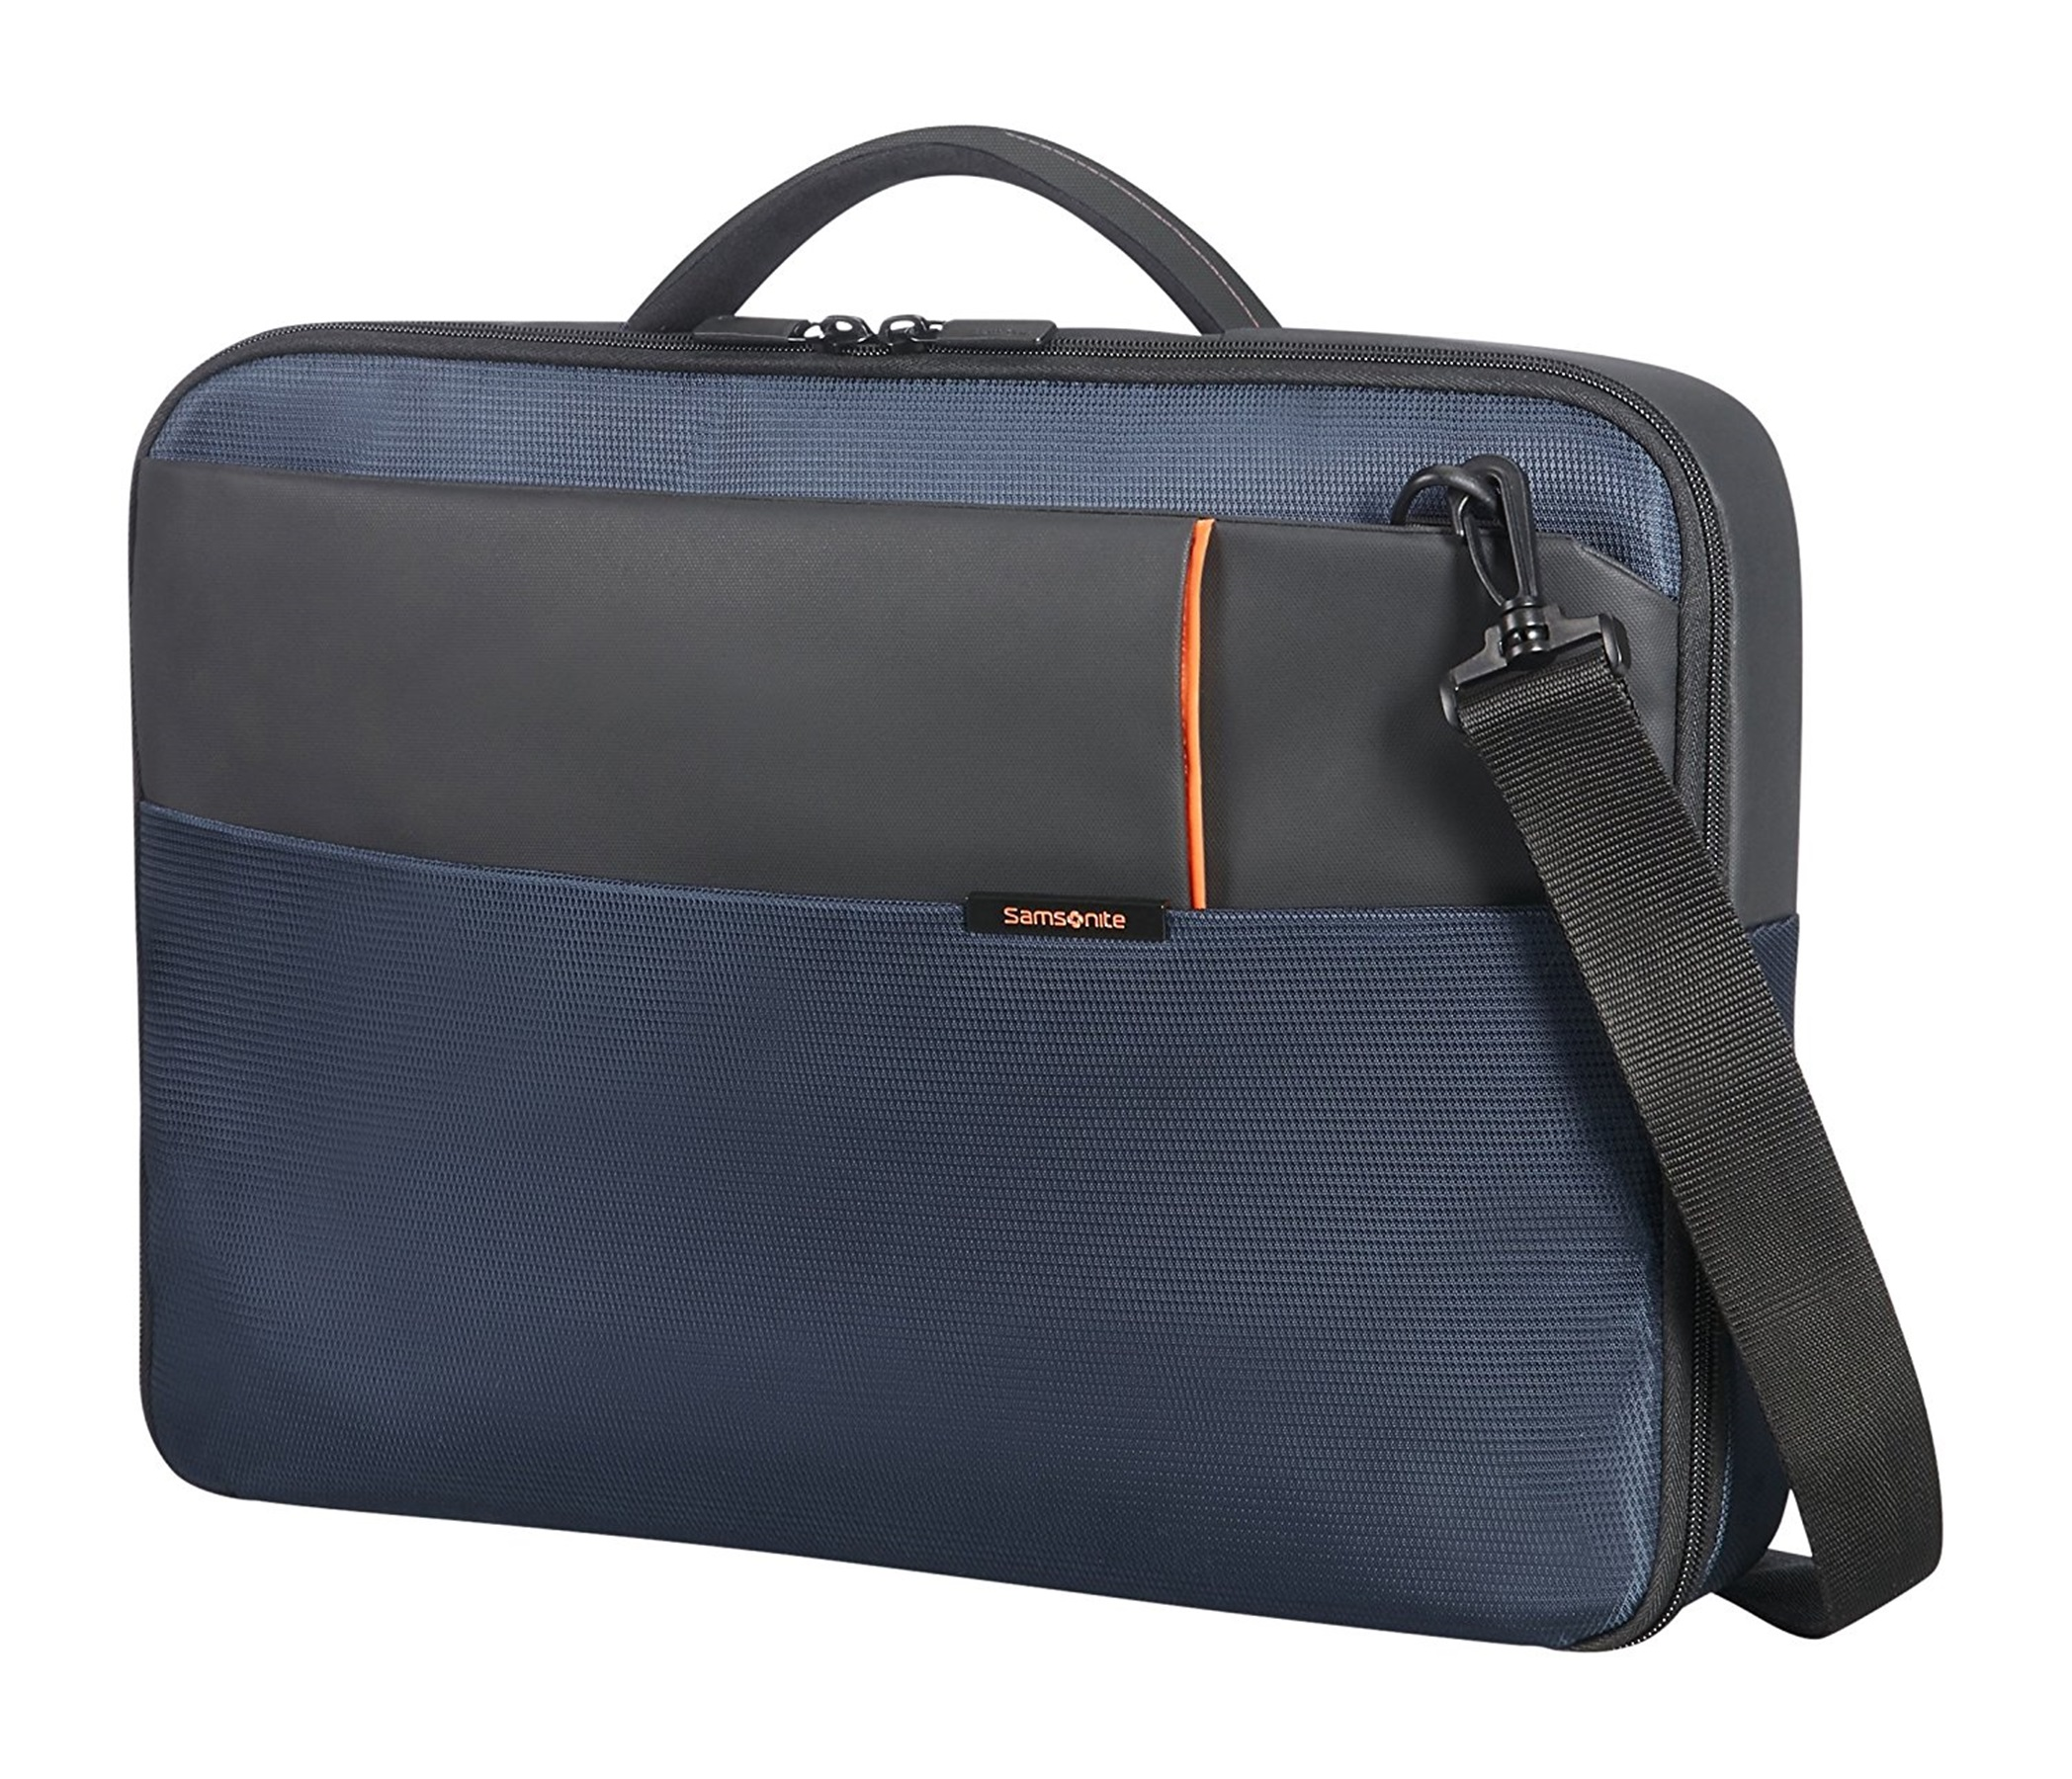 SAMSONITE - BORSE NOTEBOOK - 5414847720697